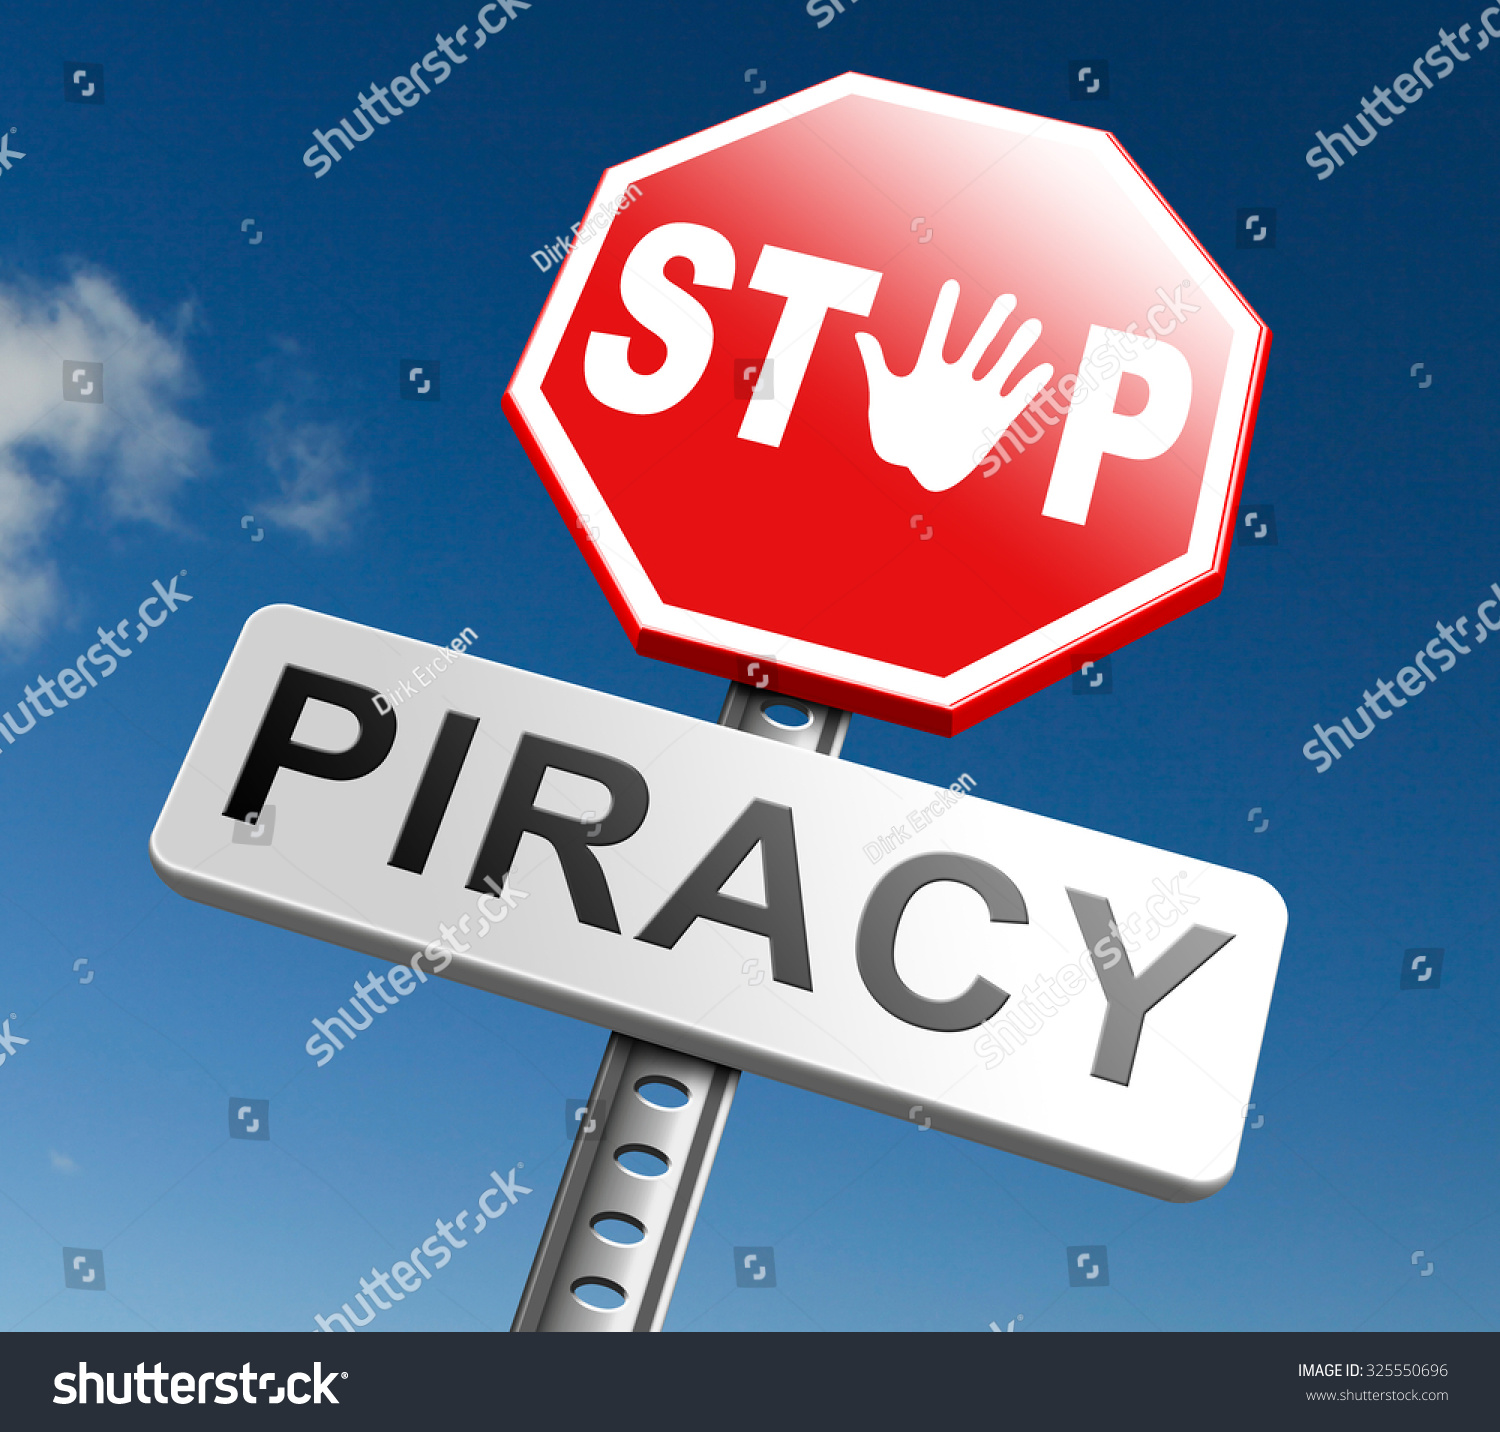 Intellectual Property Protection: Piracy Stop Illegal Download Movies Music Stock